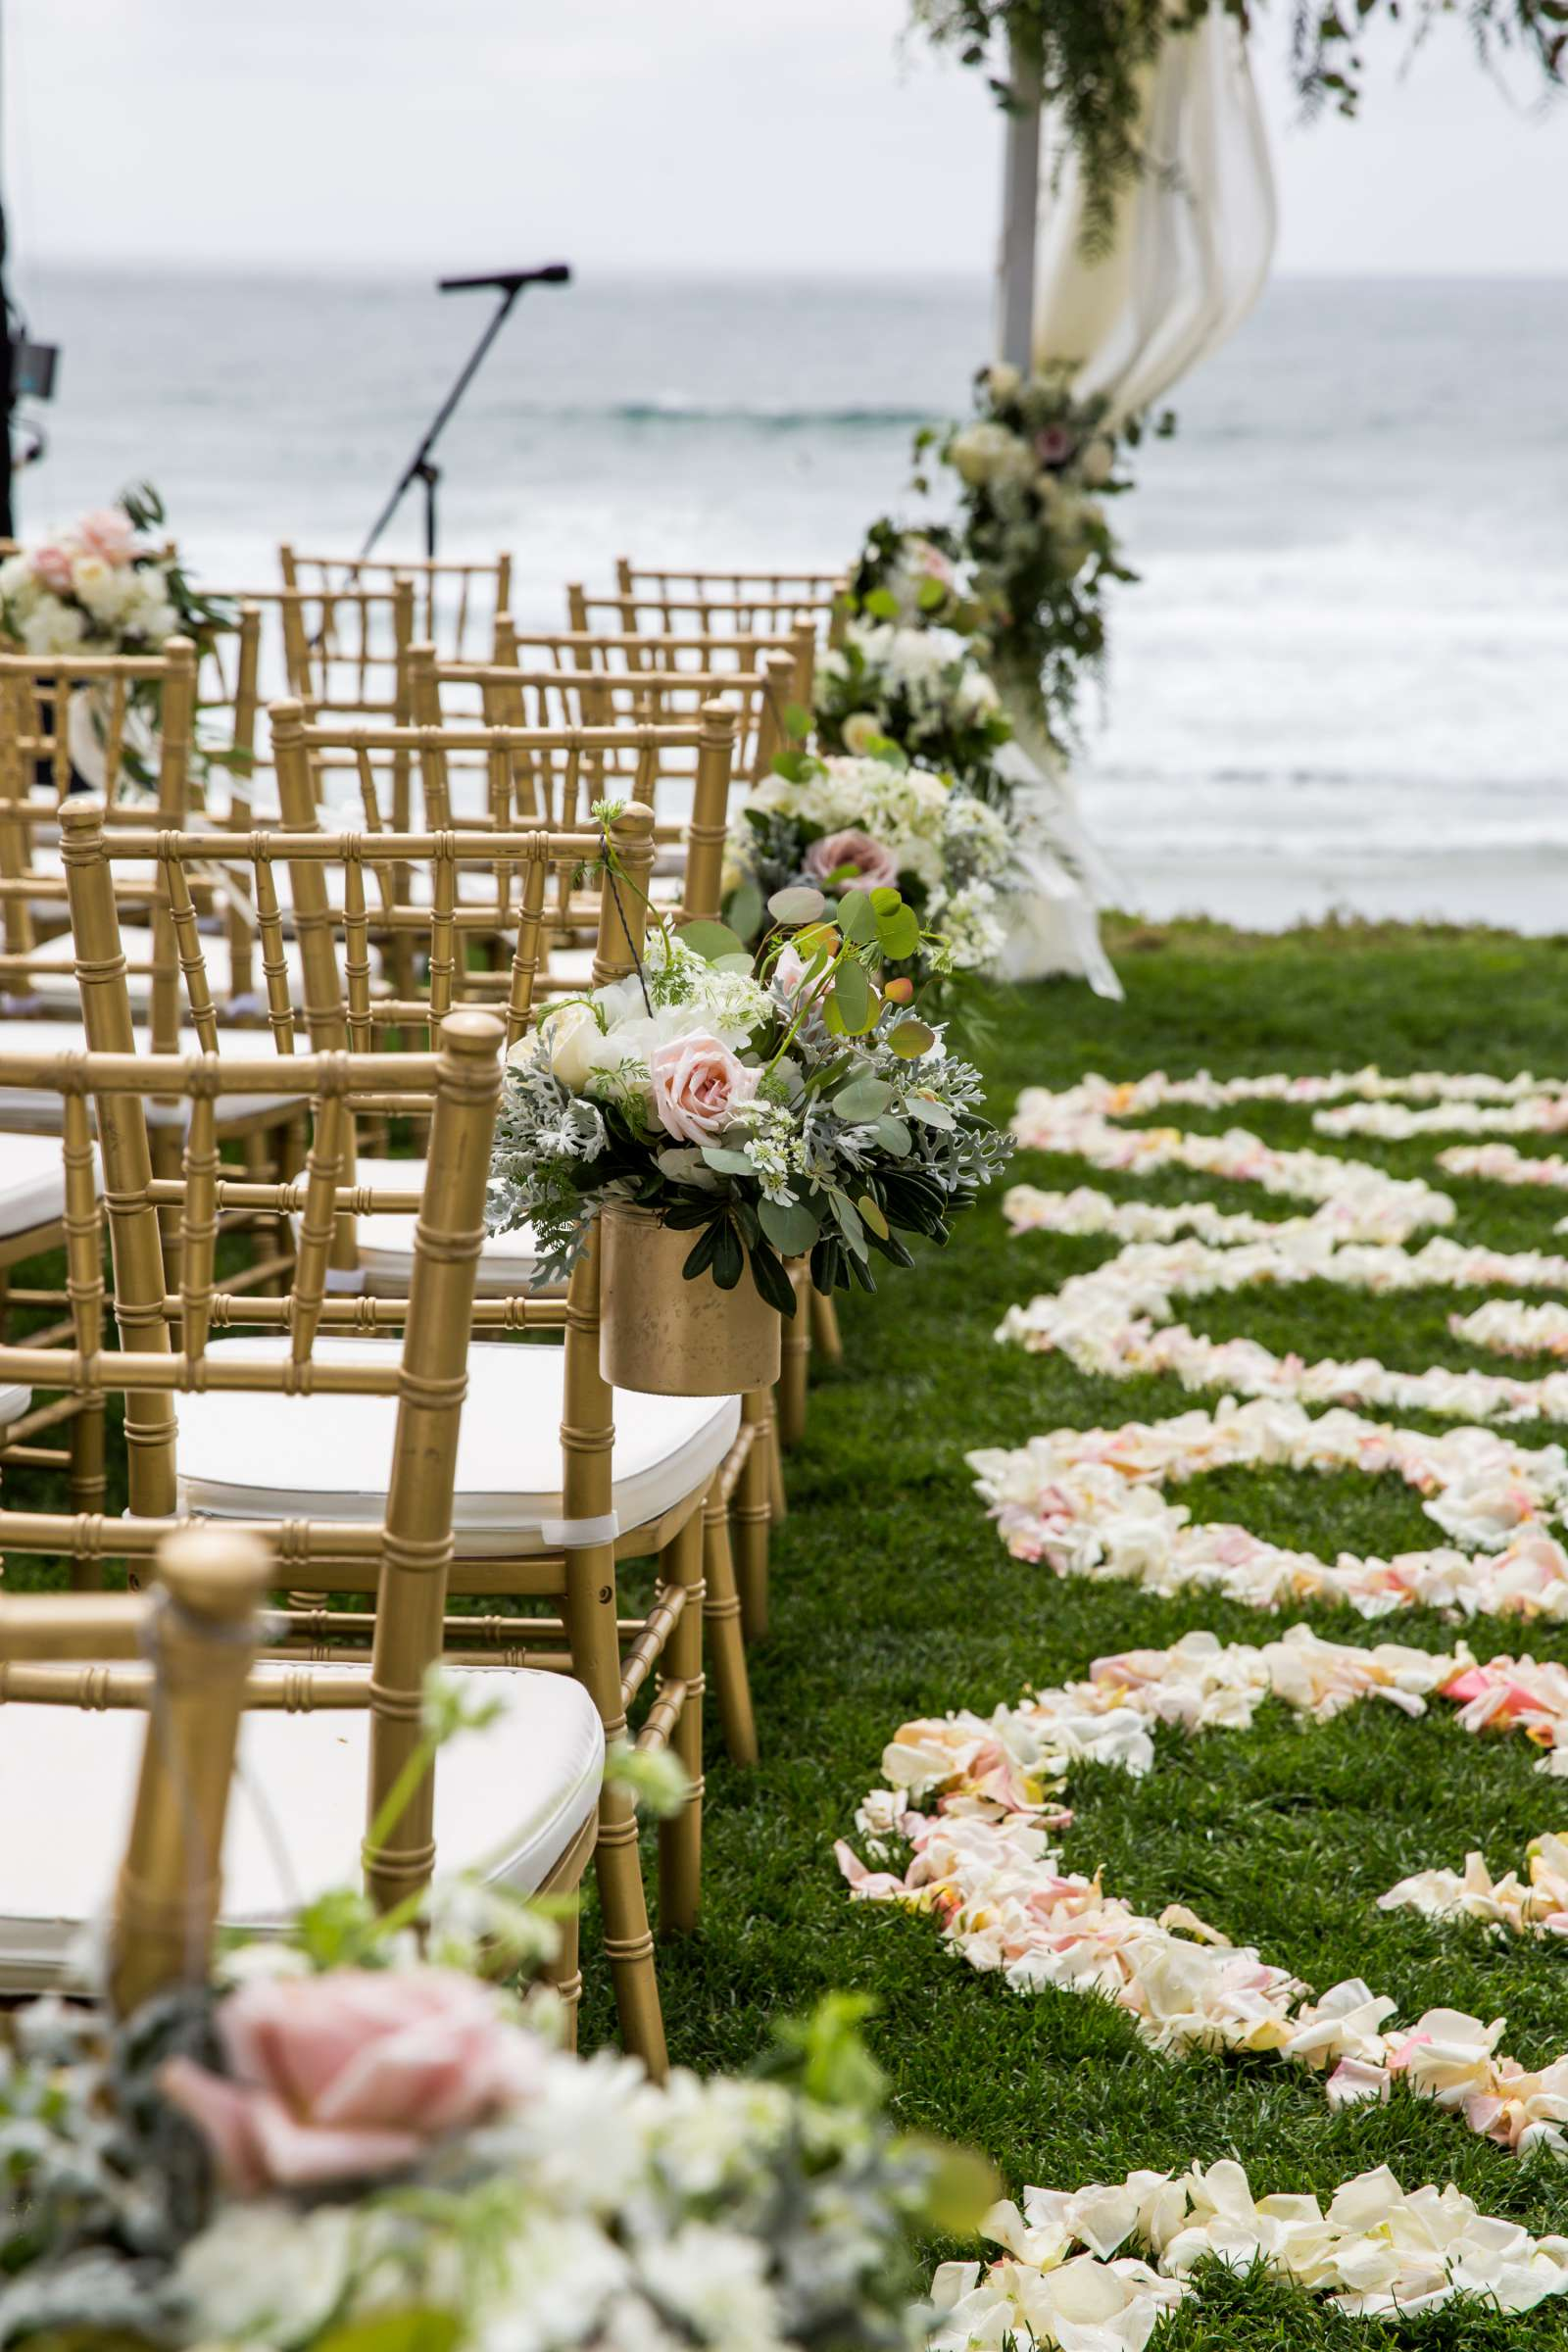 Scripps Seaside Forum Wedding coordinated by Lavish Weddings, Cindy and Justin Wedding Photo #381918 by True Photography